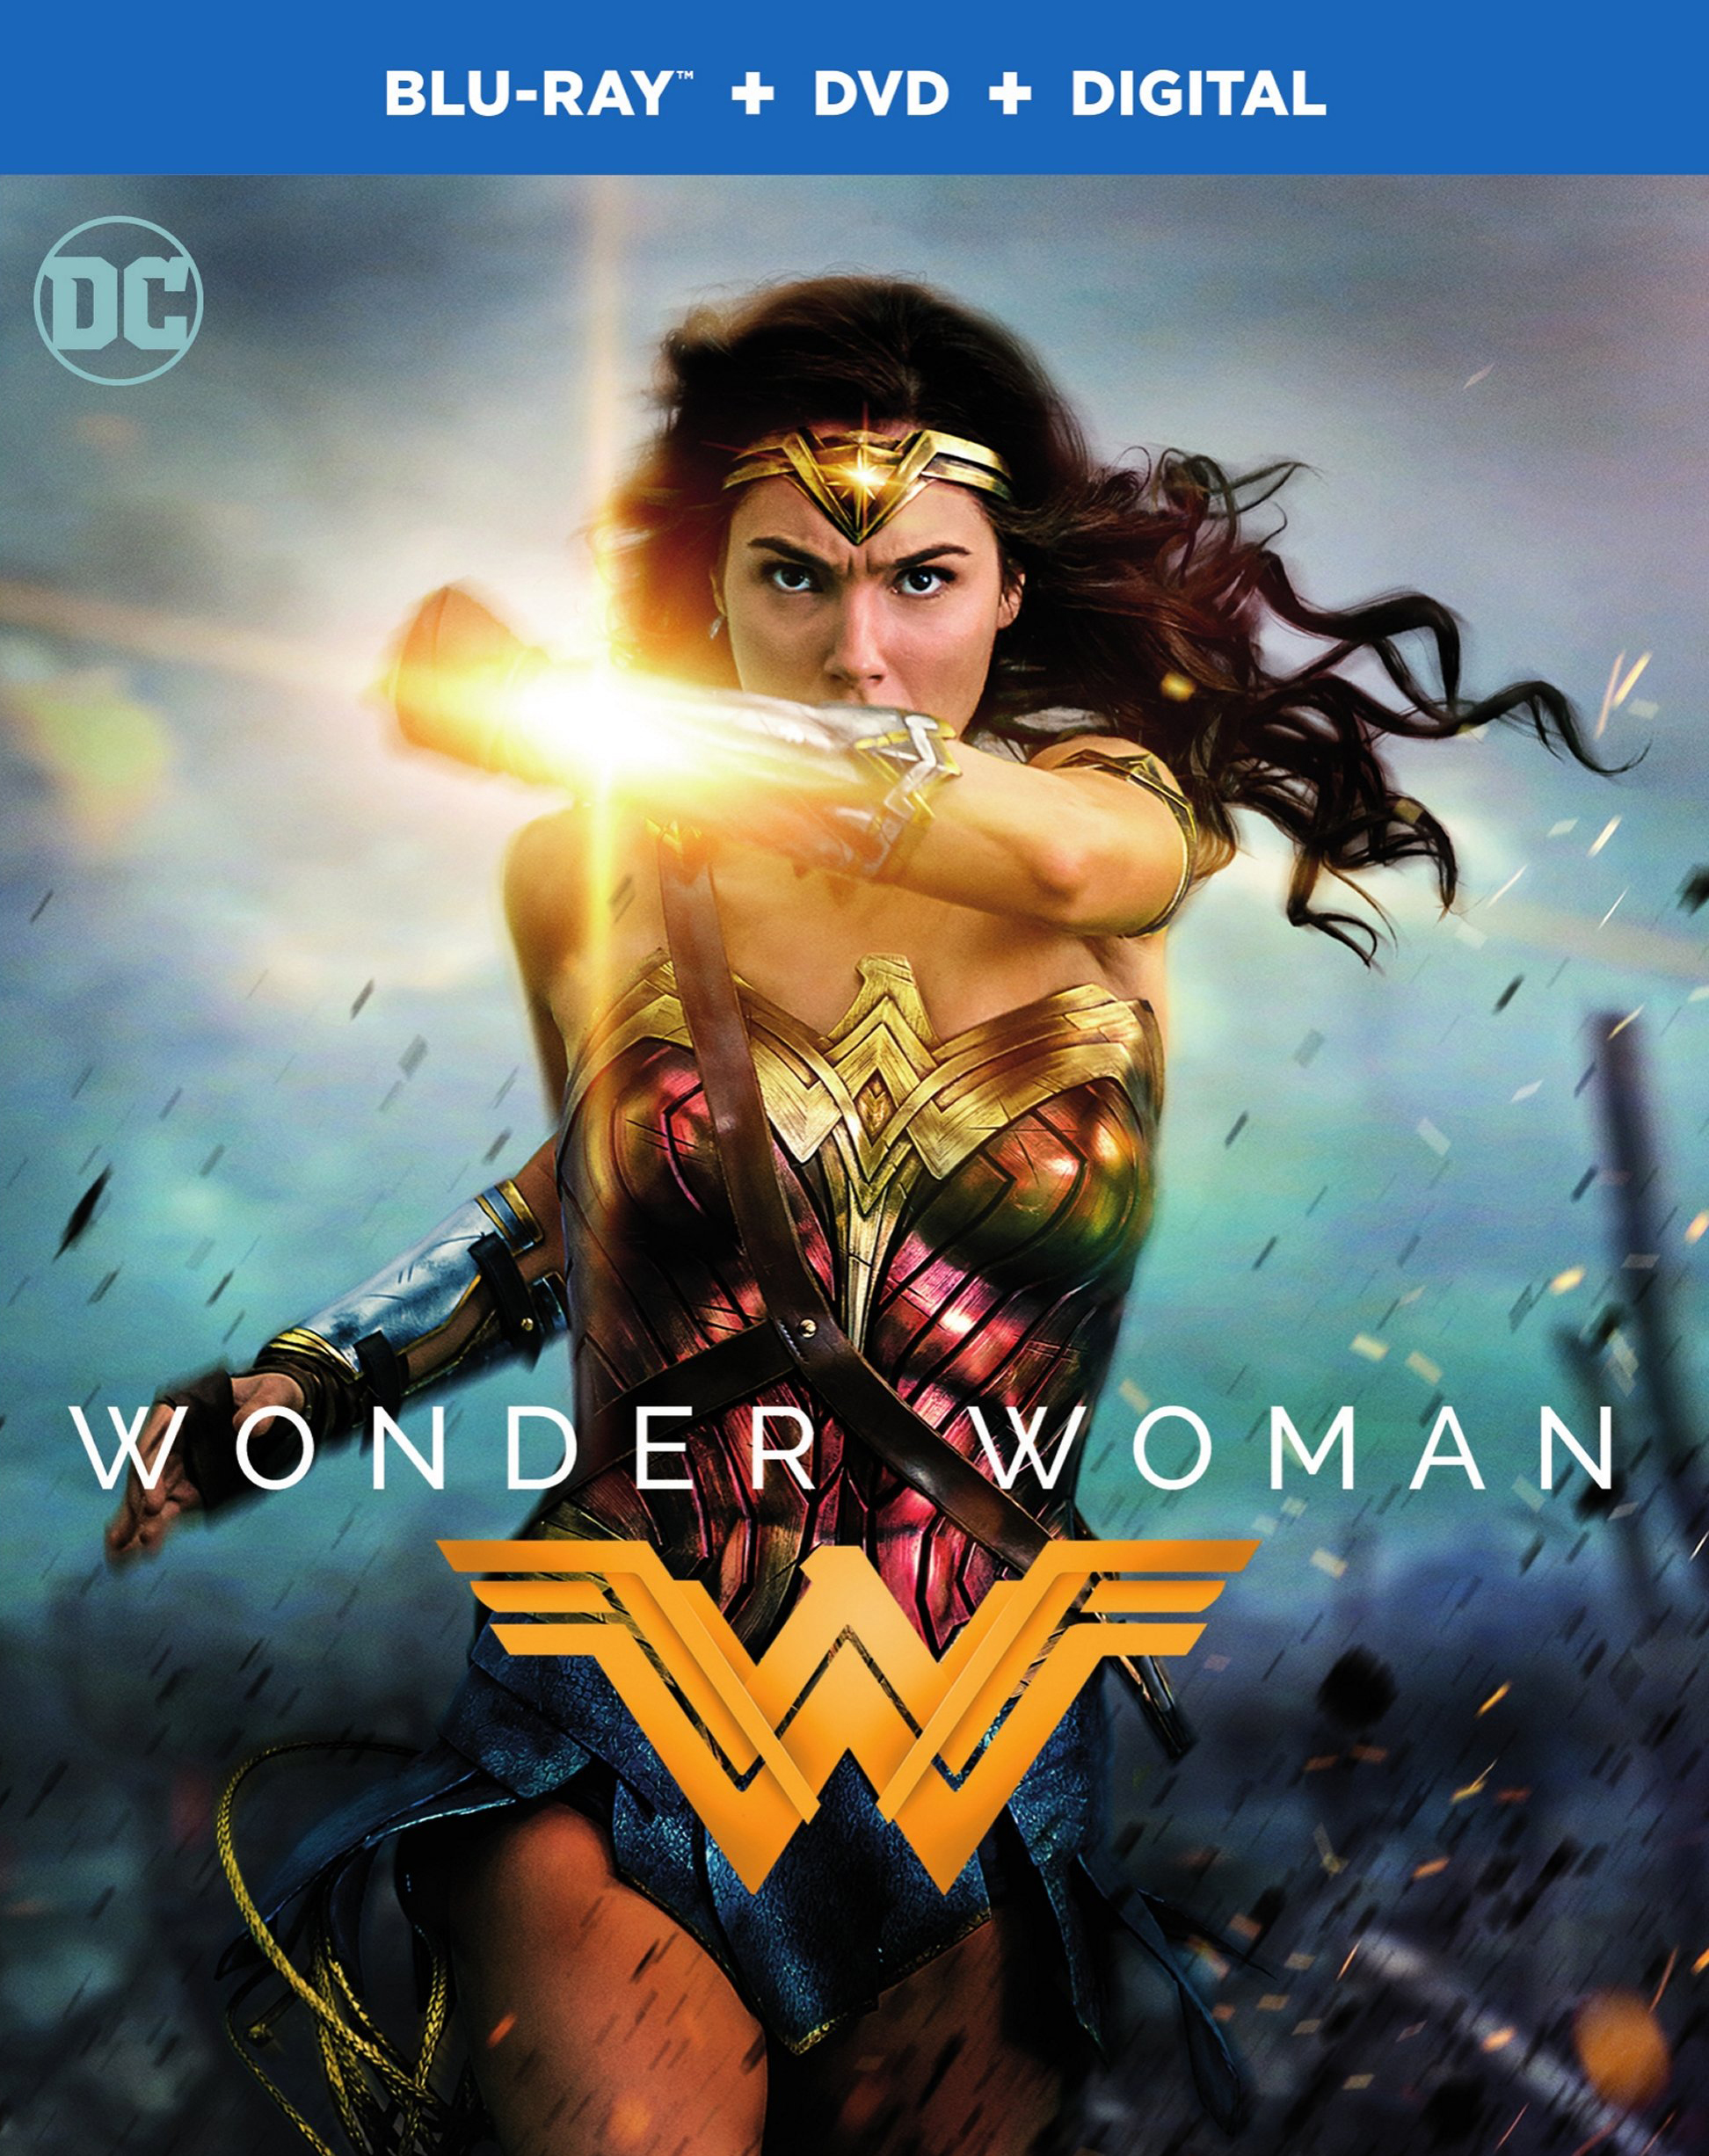 wonder-woman-blu-ray